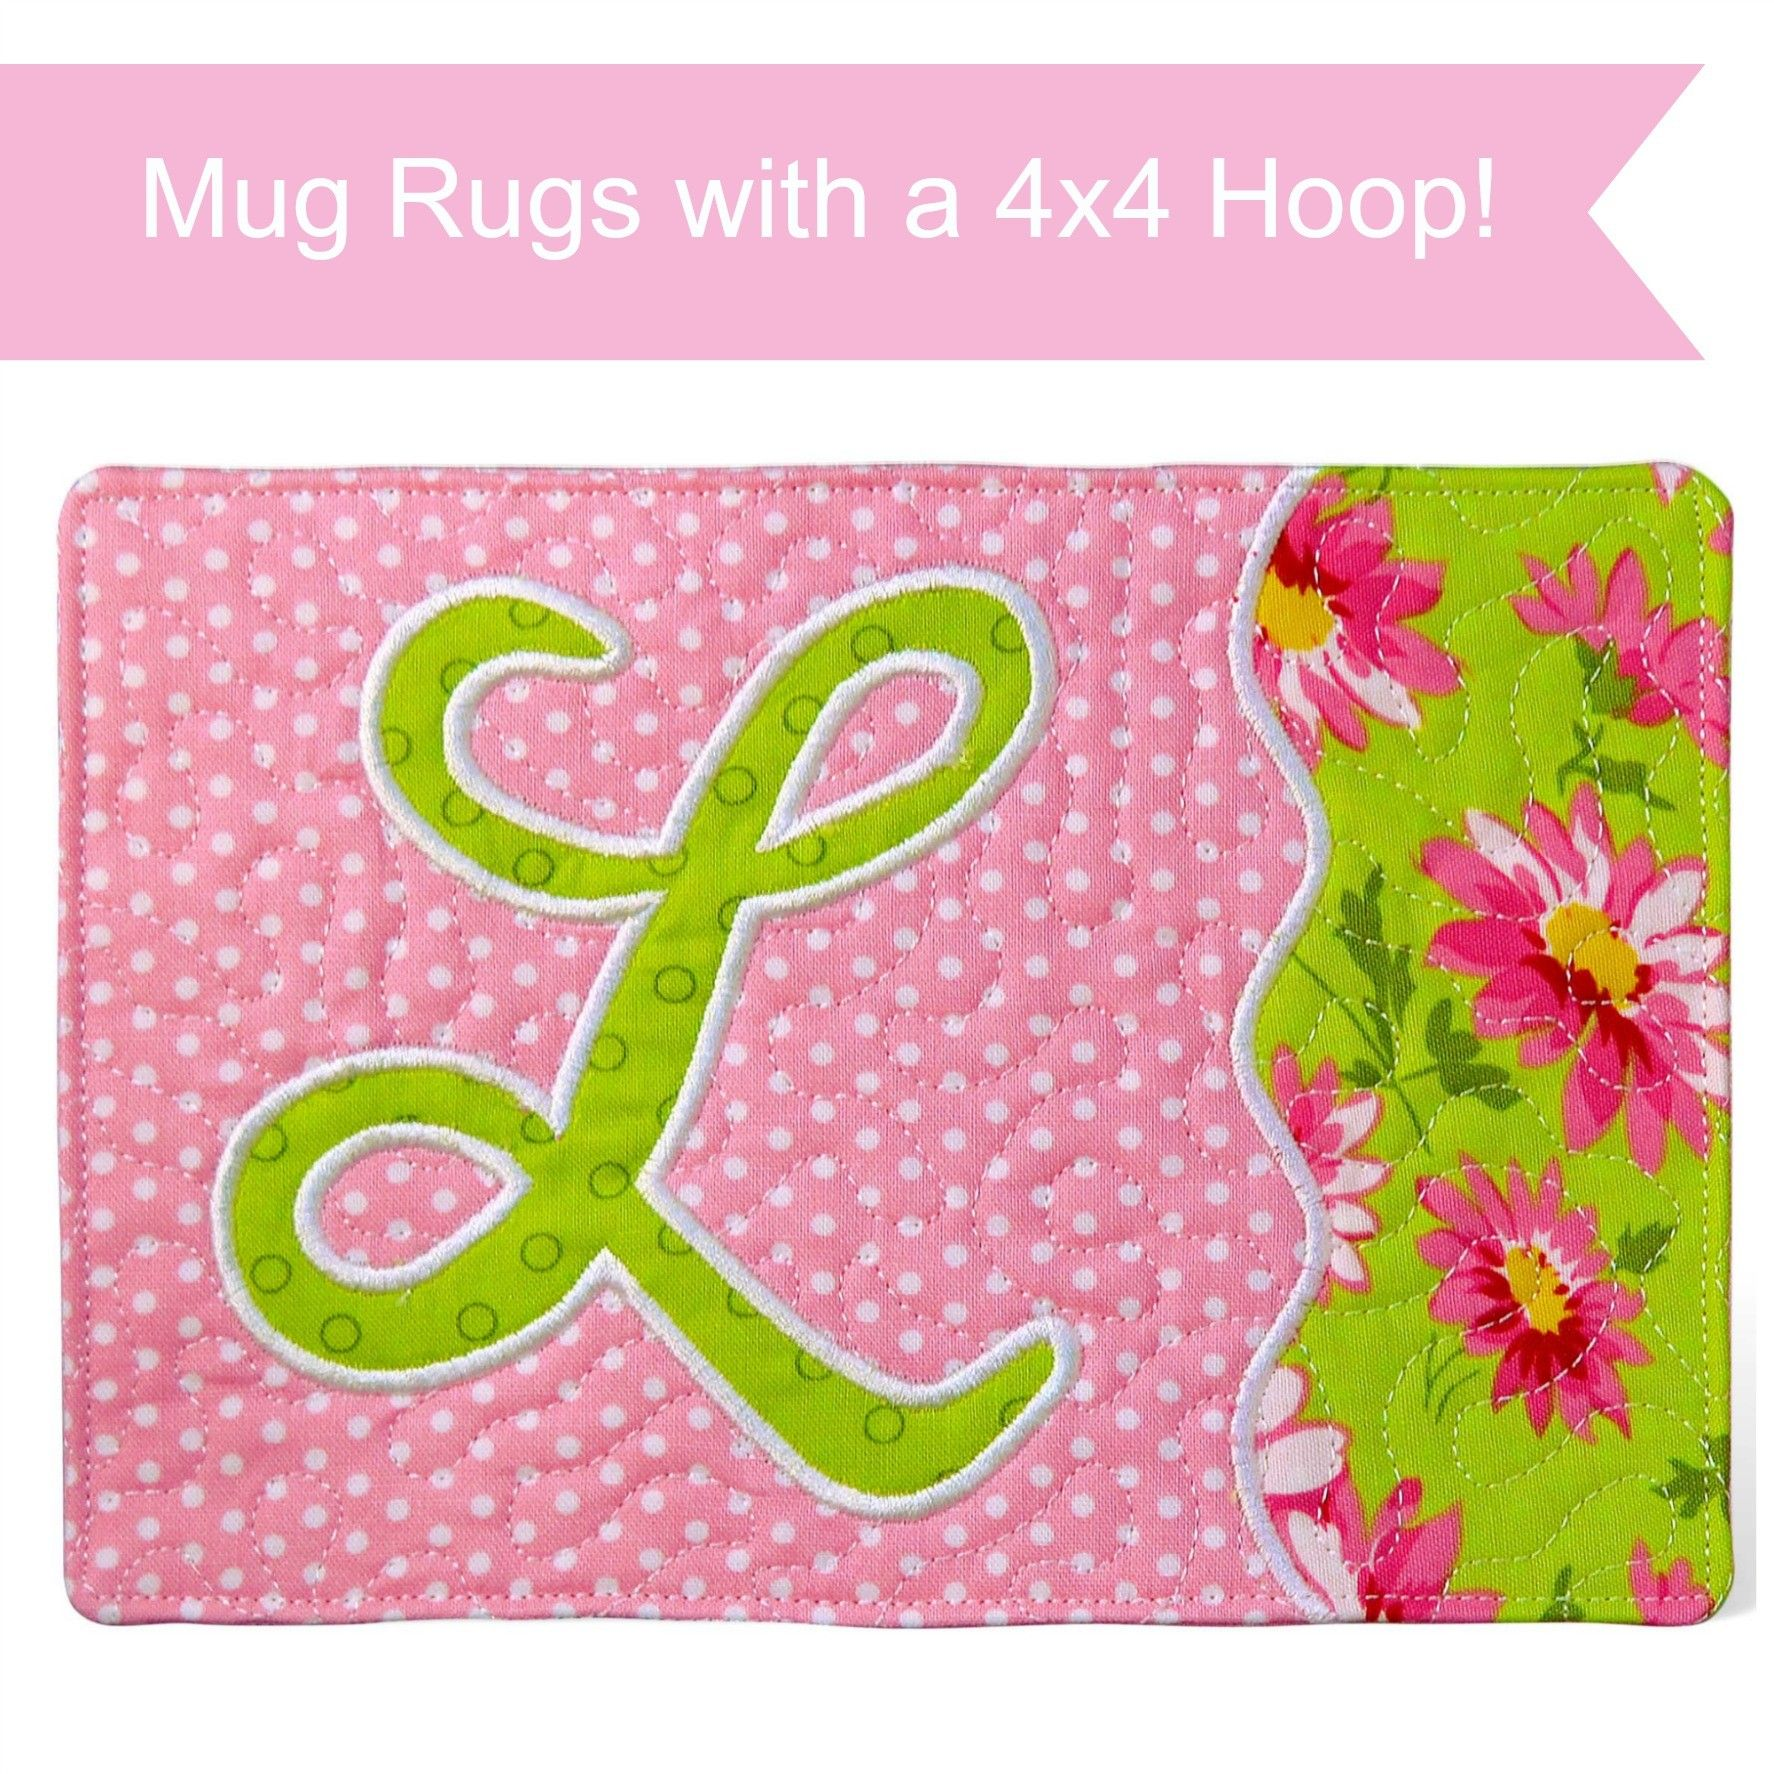 Monogrammed Mug Rugs for 4x4 Hoops! Don't feel limited by your small  embroidery